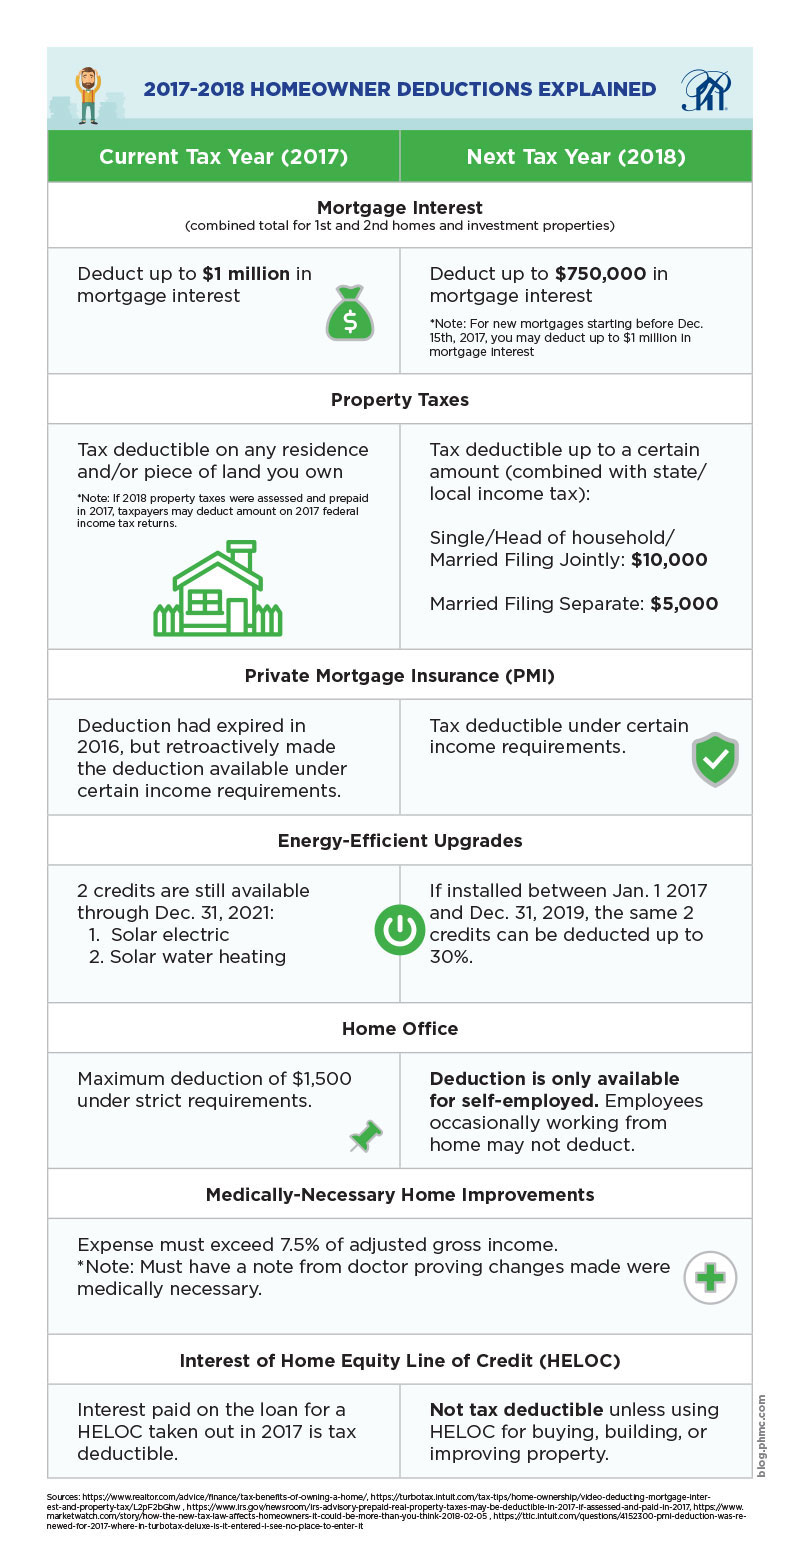 2017-2018 Homeowner Deductions Explained Itemized Deduction Current Tax Year (2017) Next Tax Year (2018) Mortgage Interest (combined total for 1st and 2nd homes and investment properties) Deduct up to $1 million in mortgage interest Deduct up to $750,000 in mortgage interest *Note: For new mortgages starting before Dec. 15th, 2017, you may deduct up to $1 million in mortgage interest Property Taxes Tax deductible on any residence and/or piece of land you own *Note: If 2018 property taxes were assessed and prepaid in 2017, taxpayers may deduct amount on 2017 federal income tax returns. Tax deductible up to a certain amount (combined with state/local income tax): Single/Head of household/Married Filing Jointly: $10,000 Married Filing Separate: $5,000 Private Mortgage Insurance (PMI) Deduction had expired in 2016, but retroactively made the deduction available under certain income requirements. Tax deductible under certain income requirements. Energy-Efficient Upgrades 2 credits are still available through Dec. 31, 2021: 1. solar electric 2. solar water heating If installed between Jan. 1 2017 and Dec. 31, 2019, the same 2 credits can be deducted up to 30%. Home Office Maximum deduction of $1,500 under strict requirements. Deduction is only available for self-employed. Employees occasionally working from home may not deduct. Medically-necessary Home Improvements Expense must exceed 7.5% of adjusted gross income. *Note: Must have a note from doctor proving changes made were medically necessary. Expense must exceed 7.5% of adjusted gross income. *Note: Must have a note from doctor proving changes made were medically necessary. Interest of Home Equity Line of Credit (HELOC) Interest paid on the loan for a HELOC taken out in 2017 is tax deductible. Not tax deductible unless using HELOC for buying, building, or improving property.